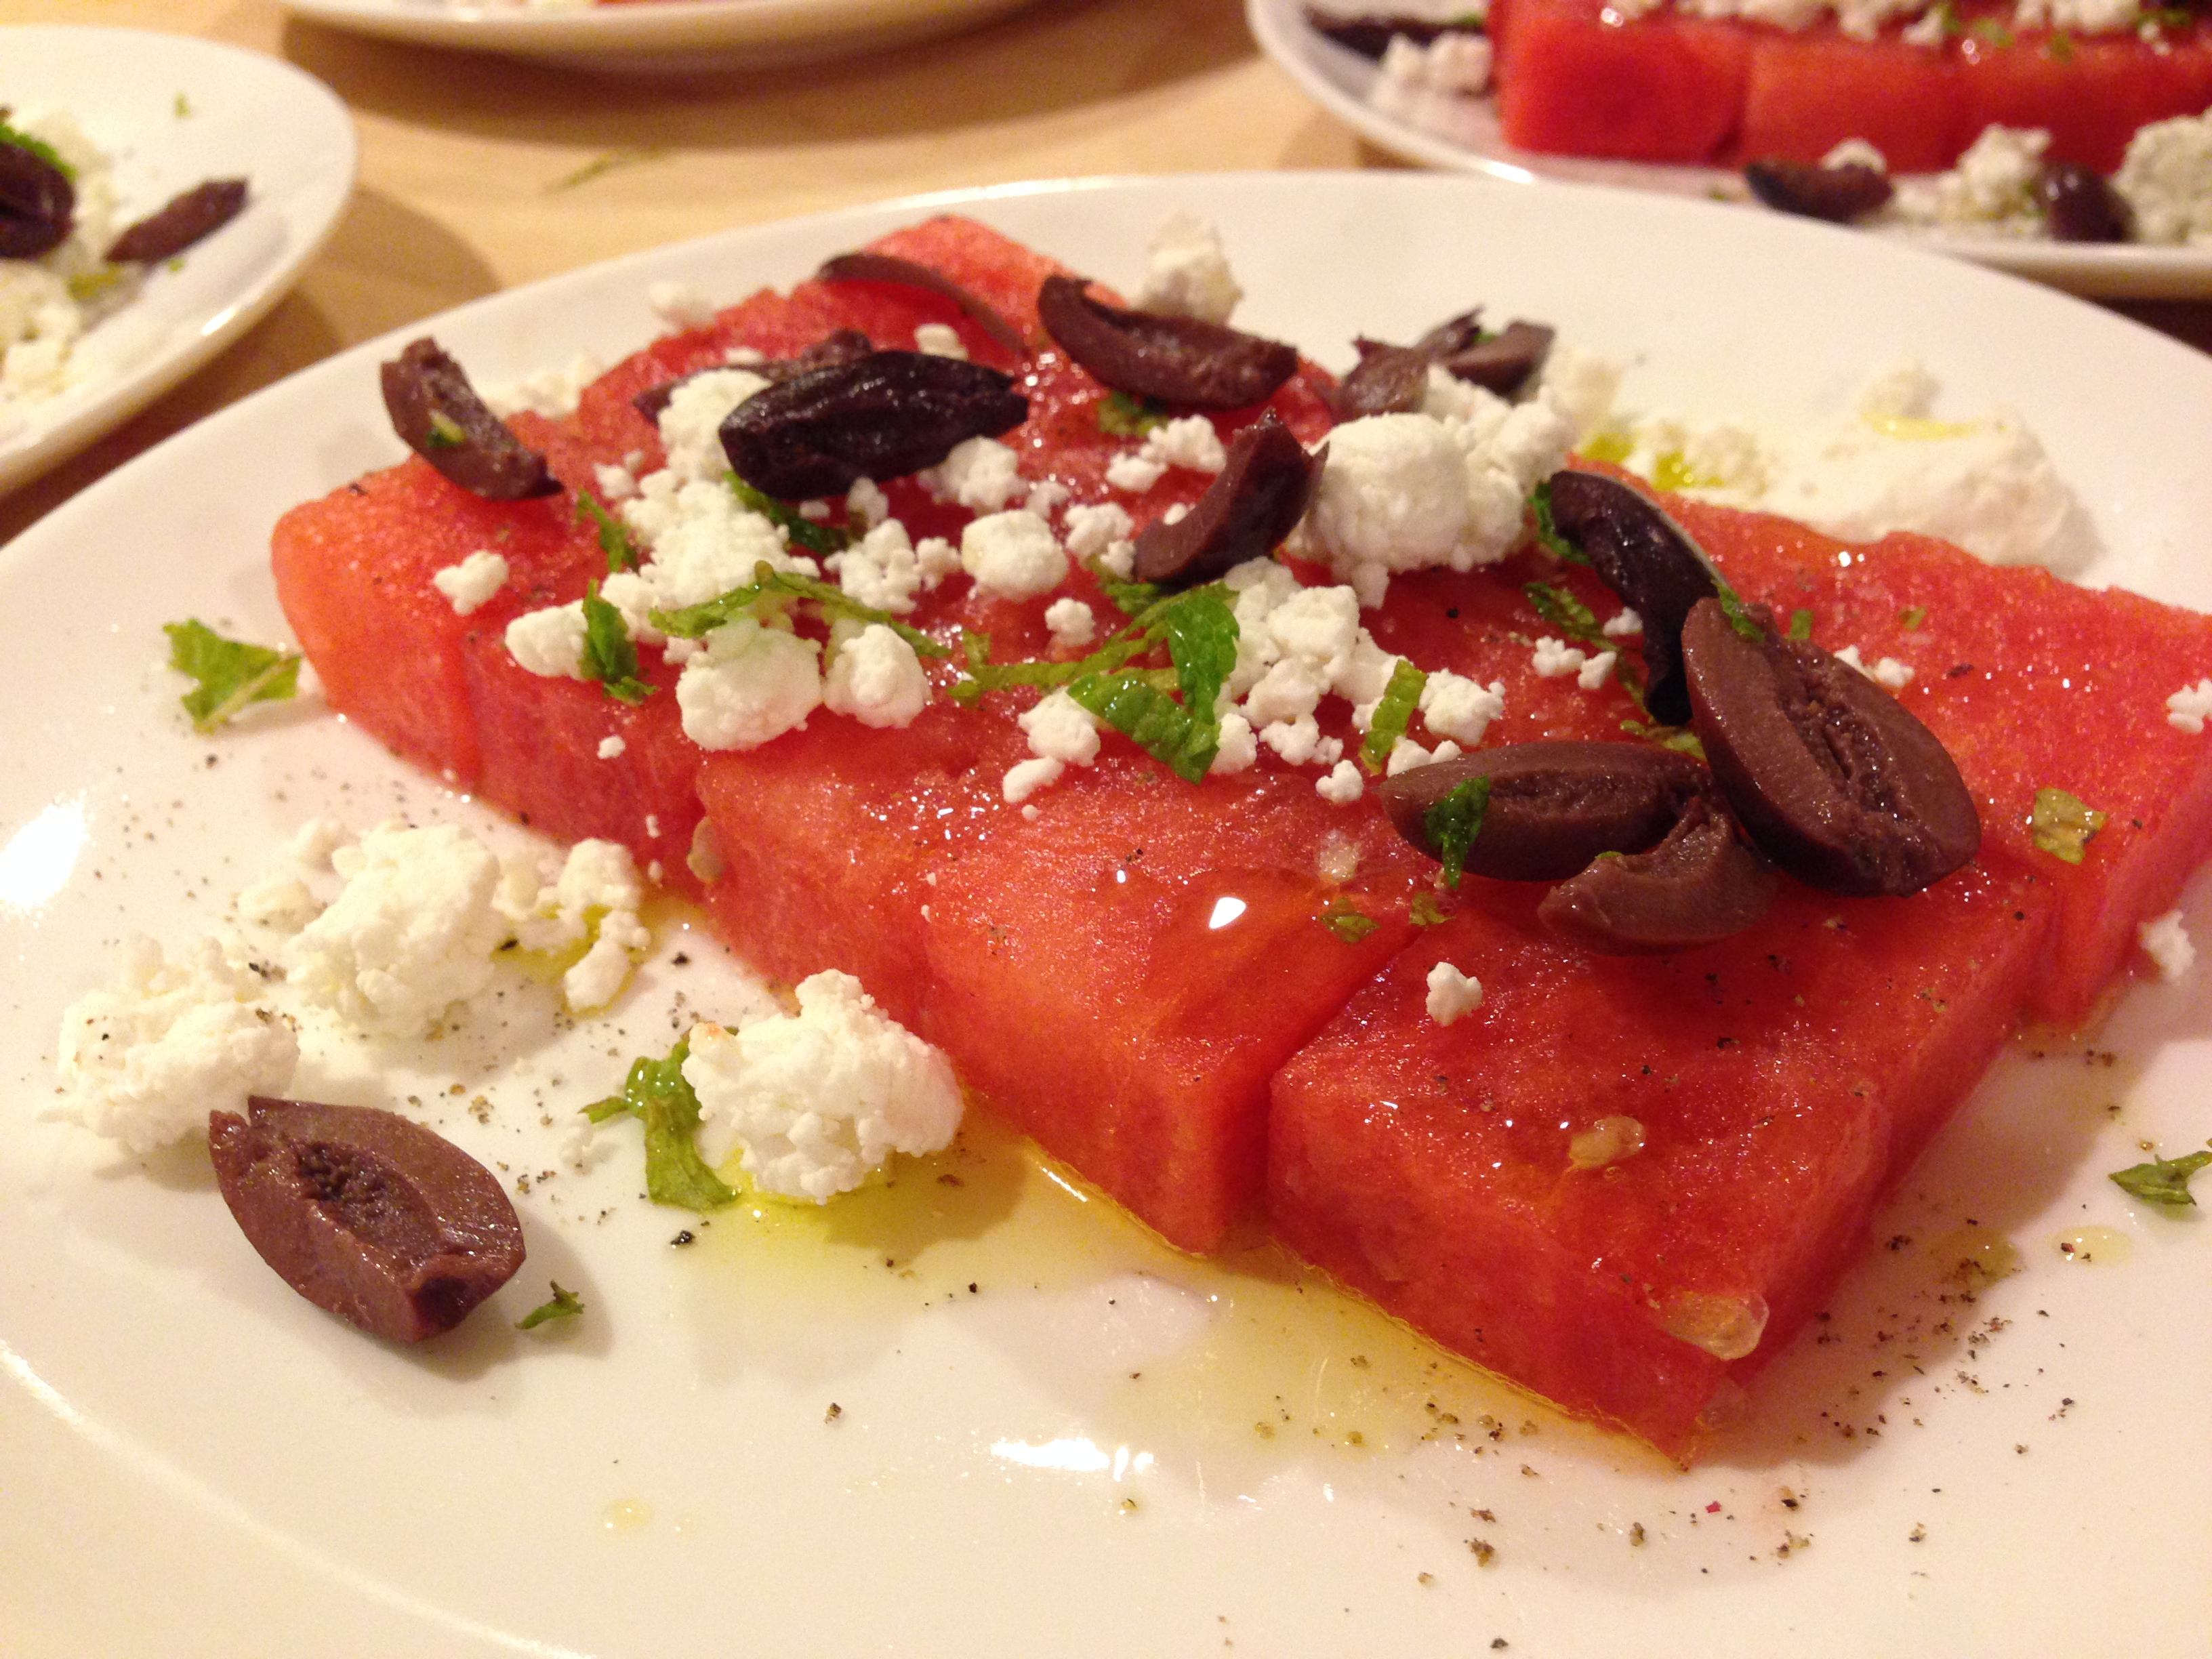 Easy watermelon salad with goat cheese, kalamata olives mint and lime juice